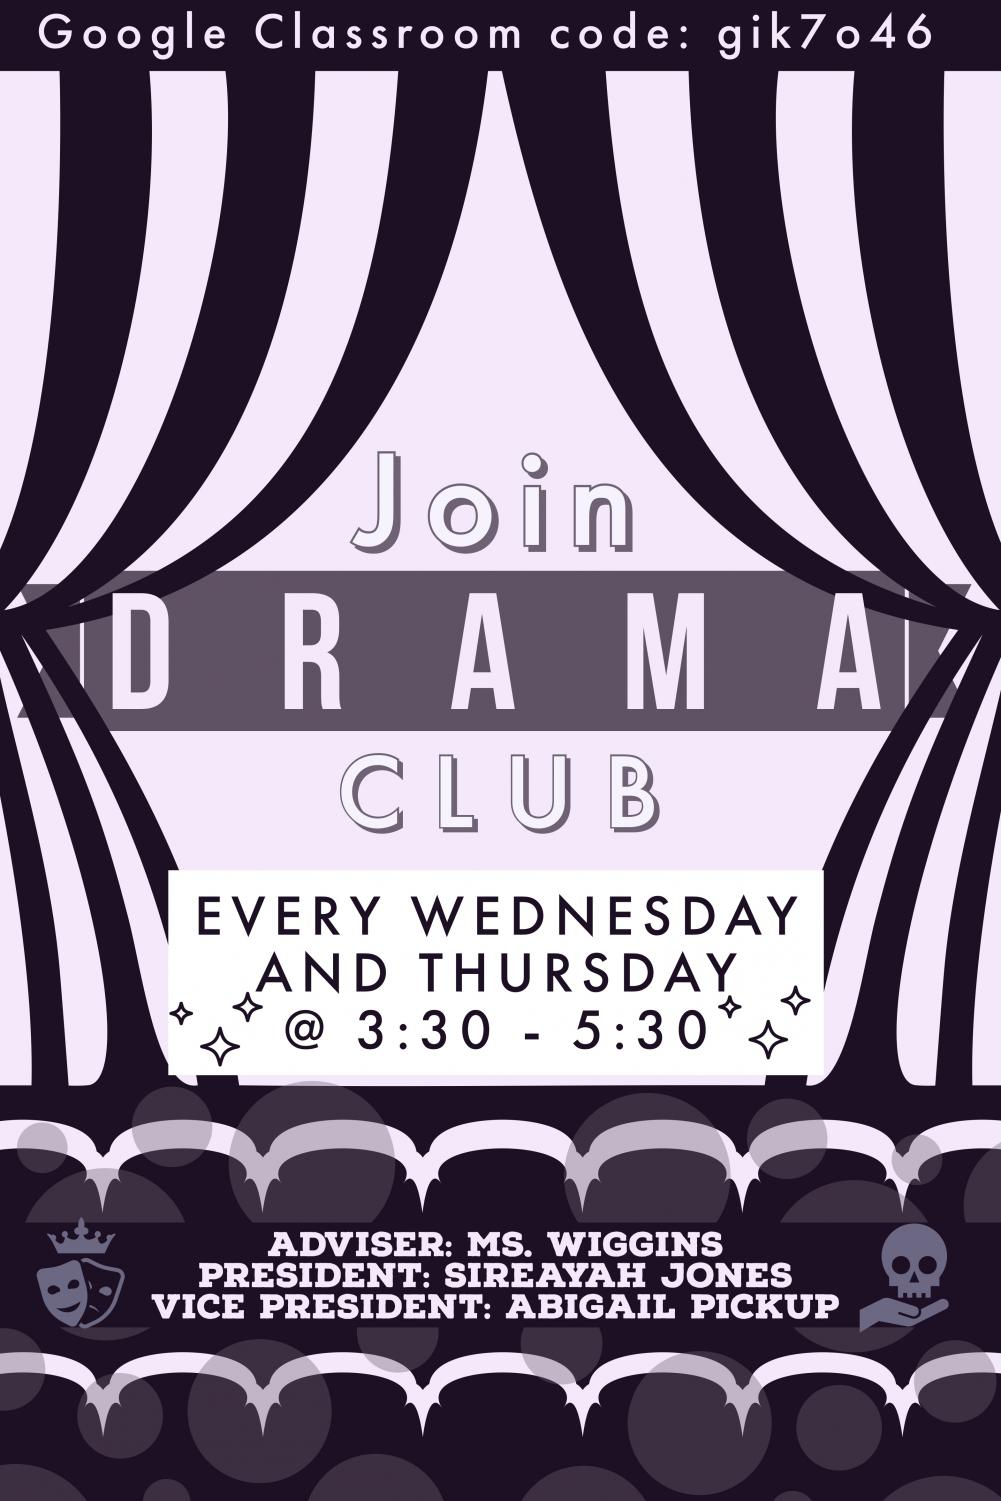 TO BE OR NOT TO BE: Despite quarantine, the Drama Club continues. They are seeking for new members.